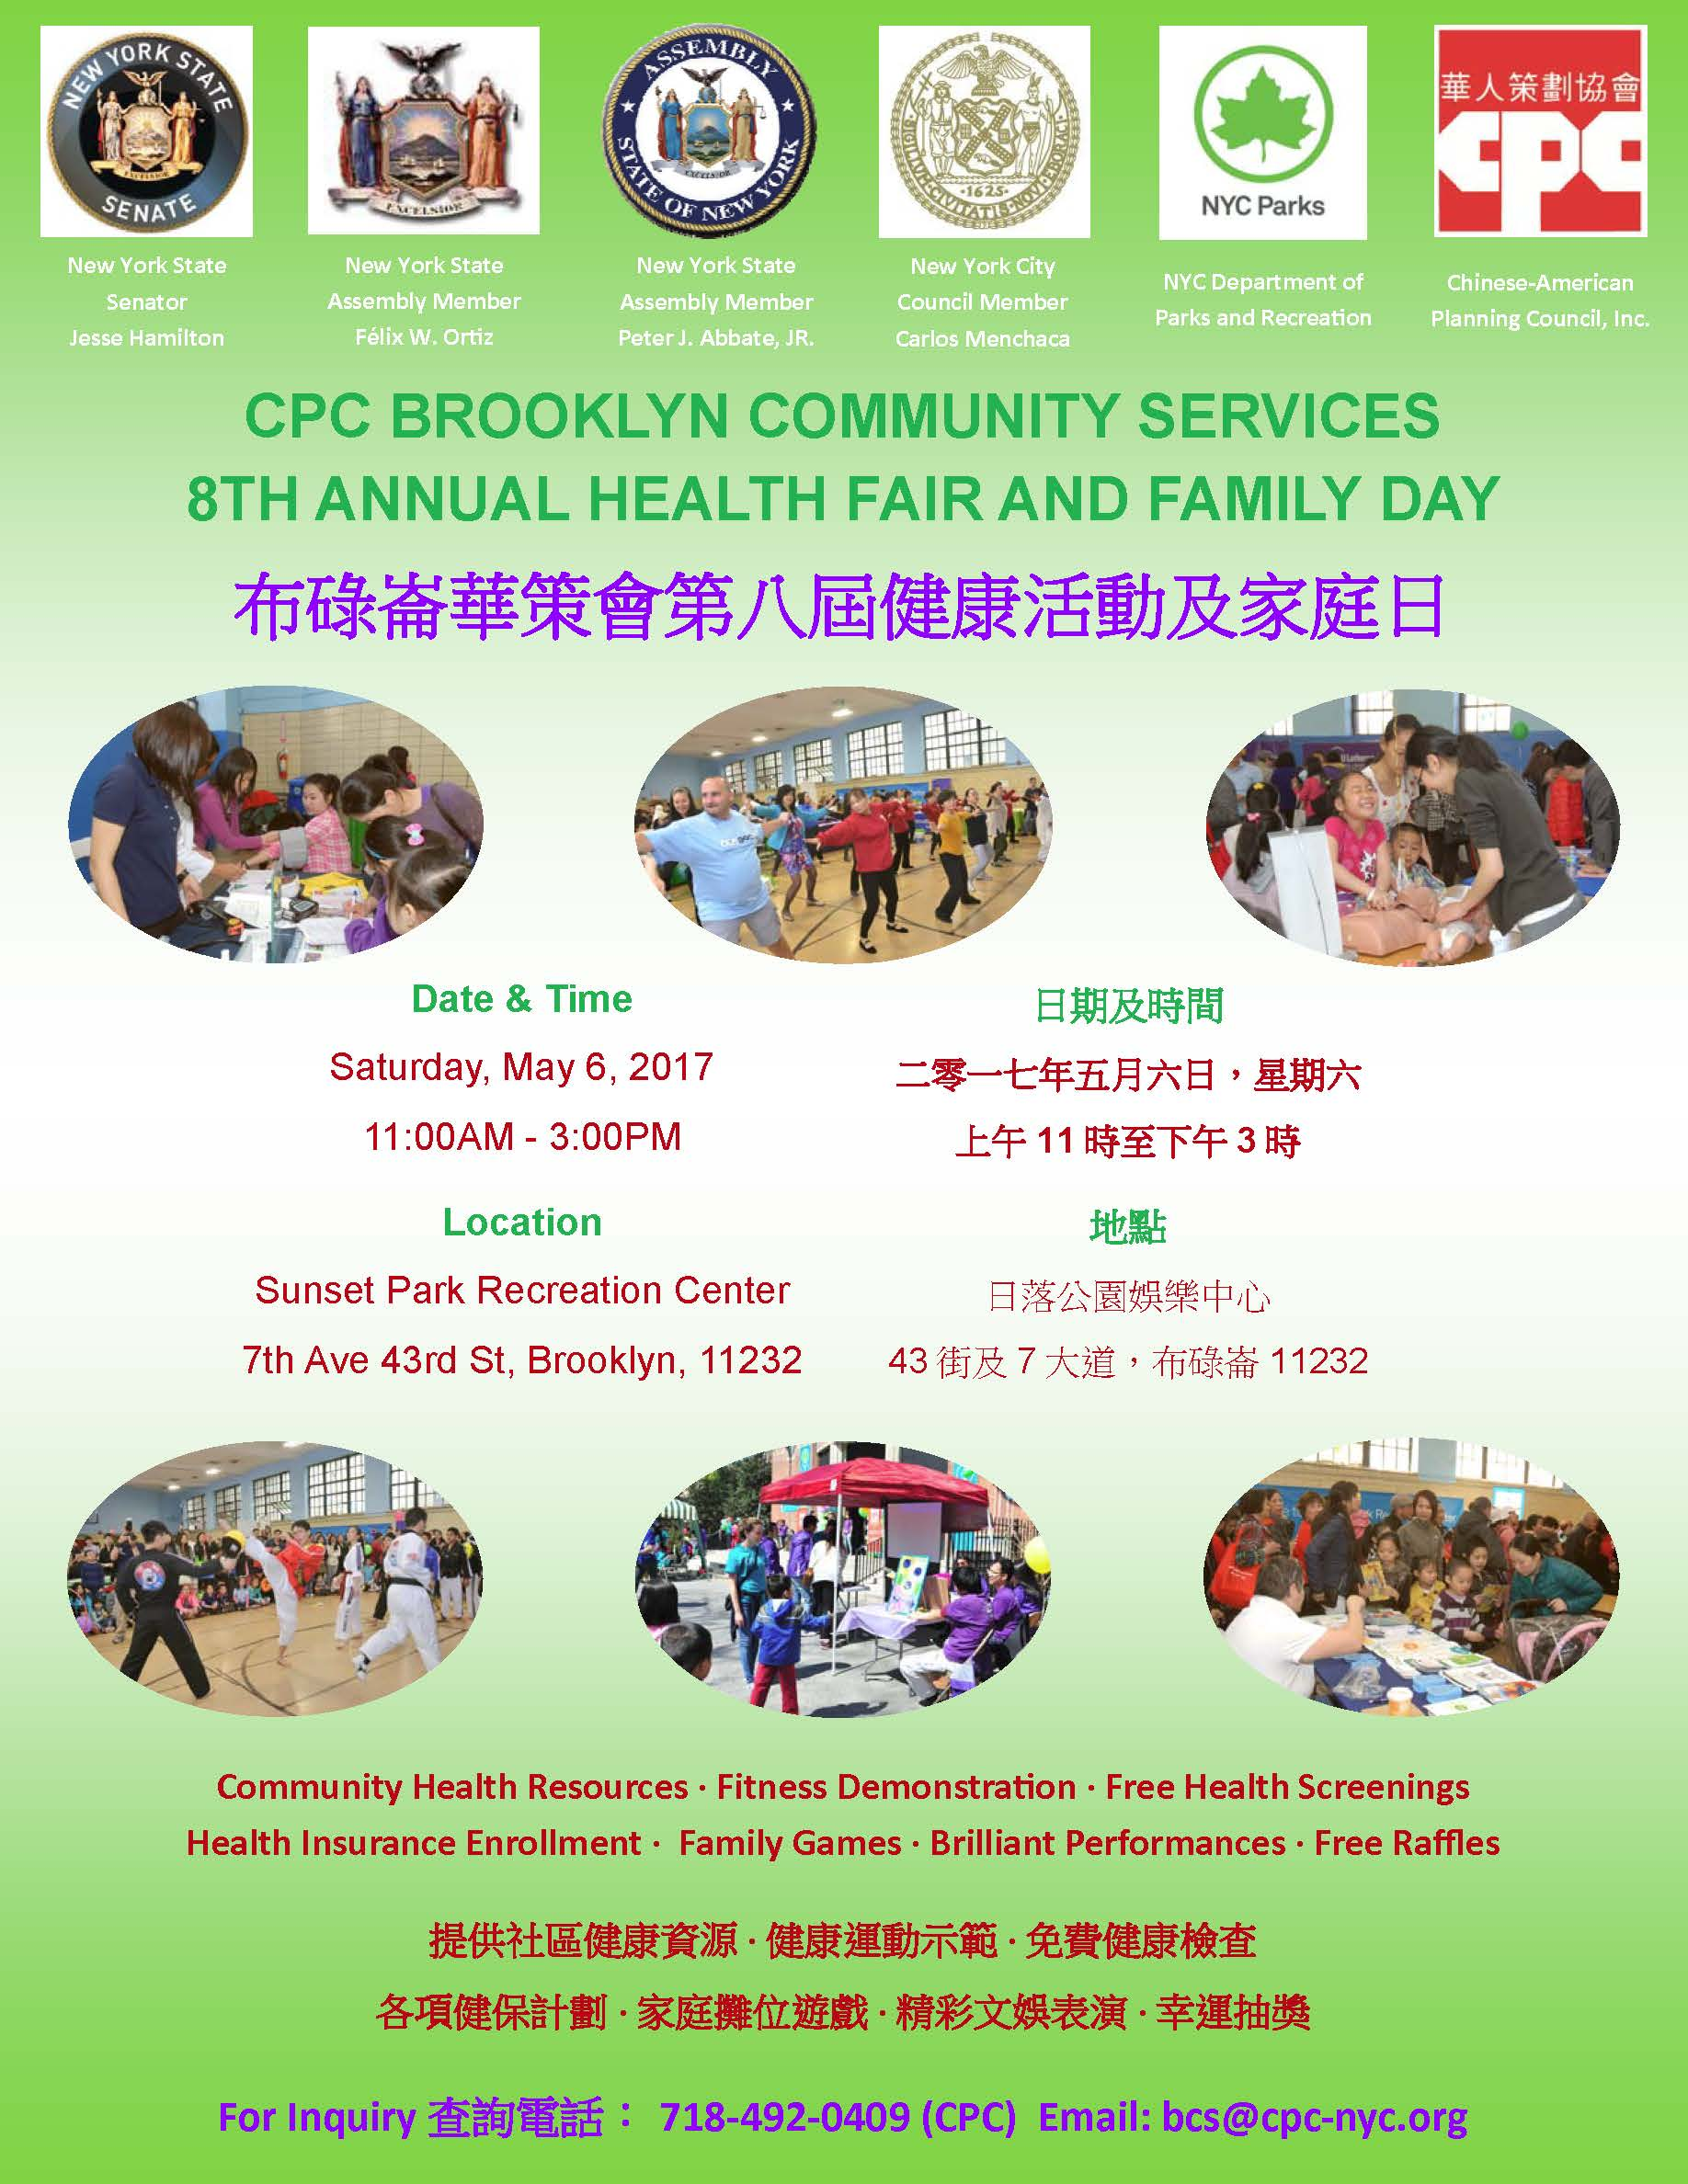 CPC Brooklyn Health Fair and Family Day | Chinese-American Planning